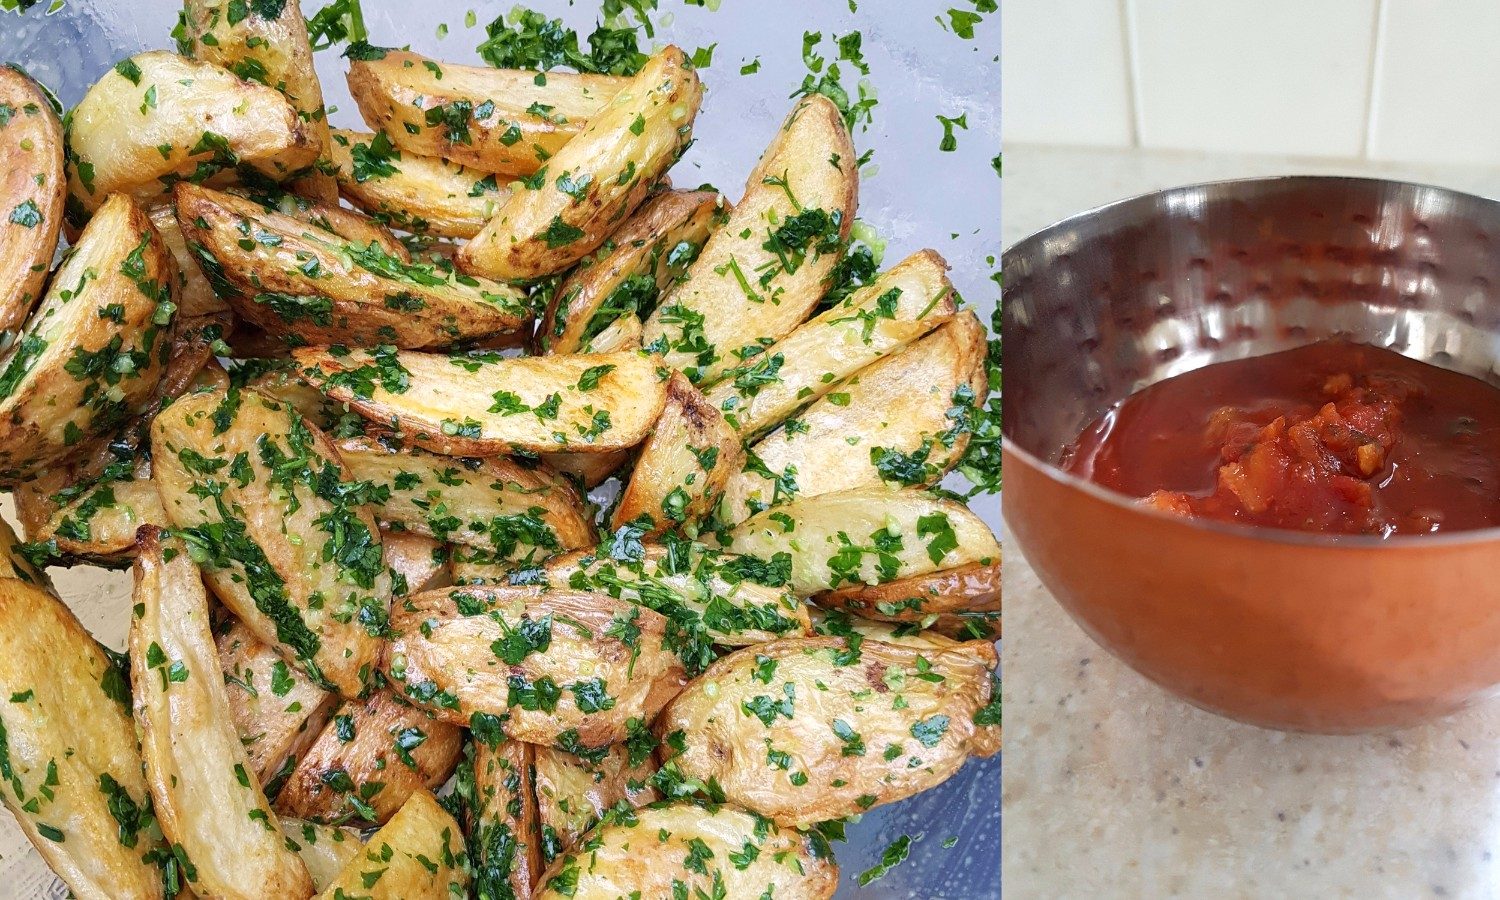 home-baked-potato-wedges-parsley-garlic.jpg